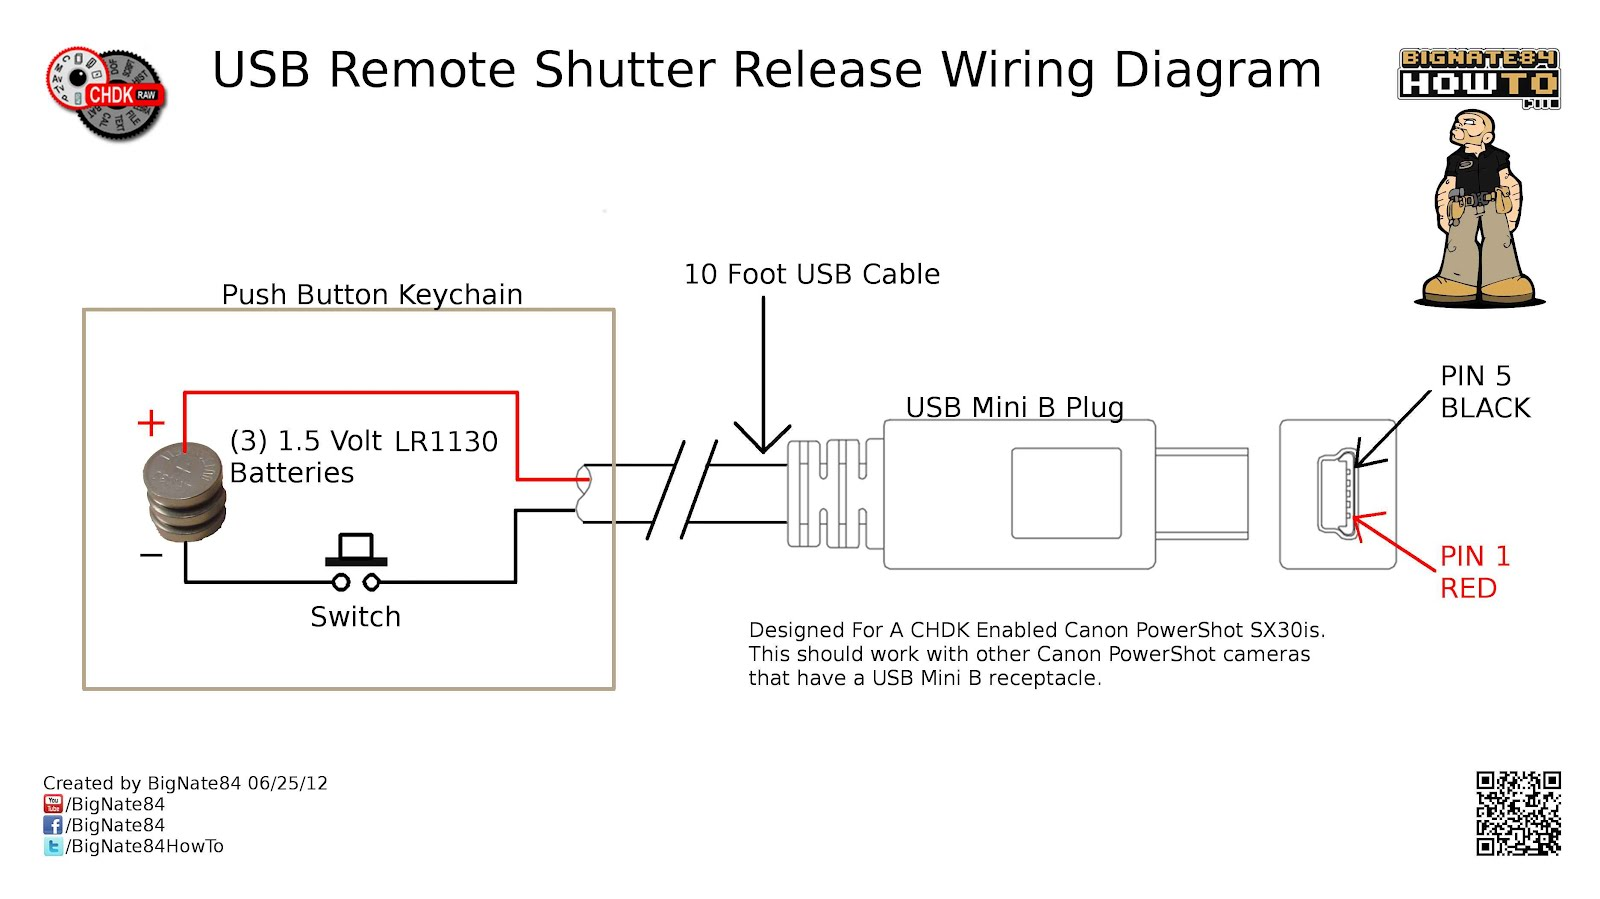 latest?cb=20120809225626 image 0001 usb remote shutter wiring diagram 1 jpeg chdk wiki micro usb plug wiring diagram at gsmportal.co